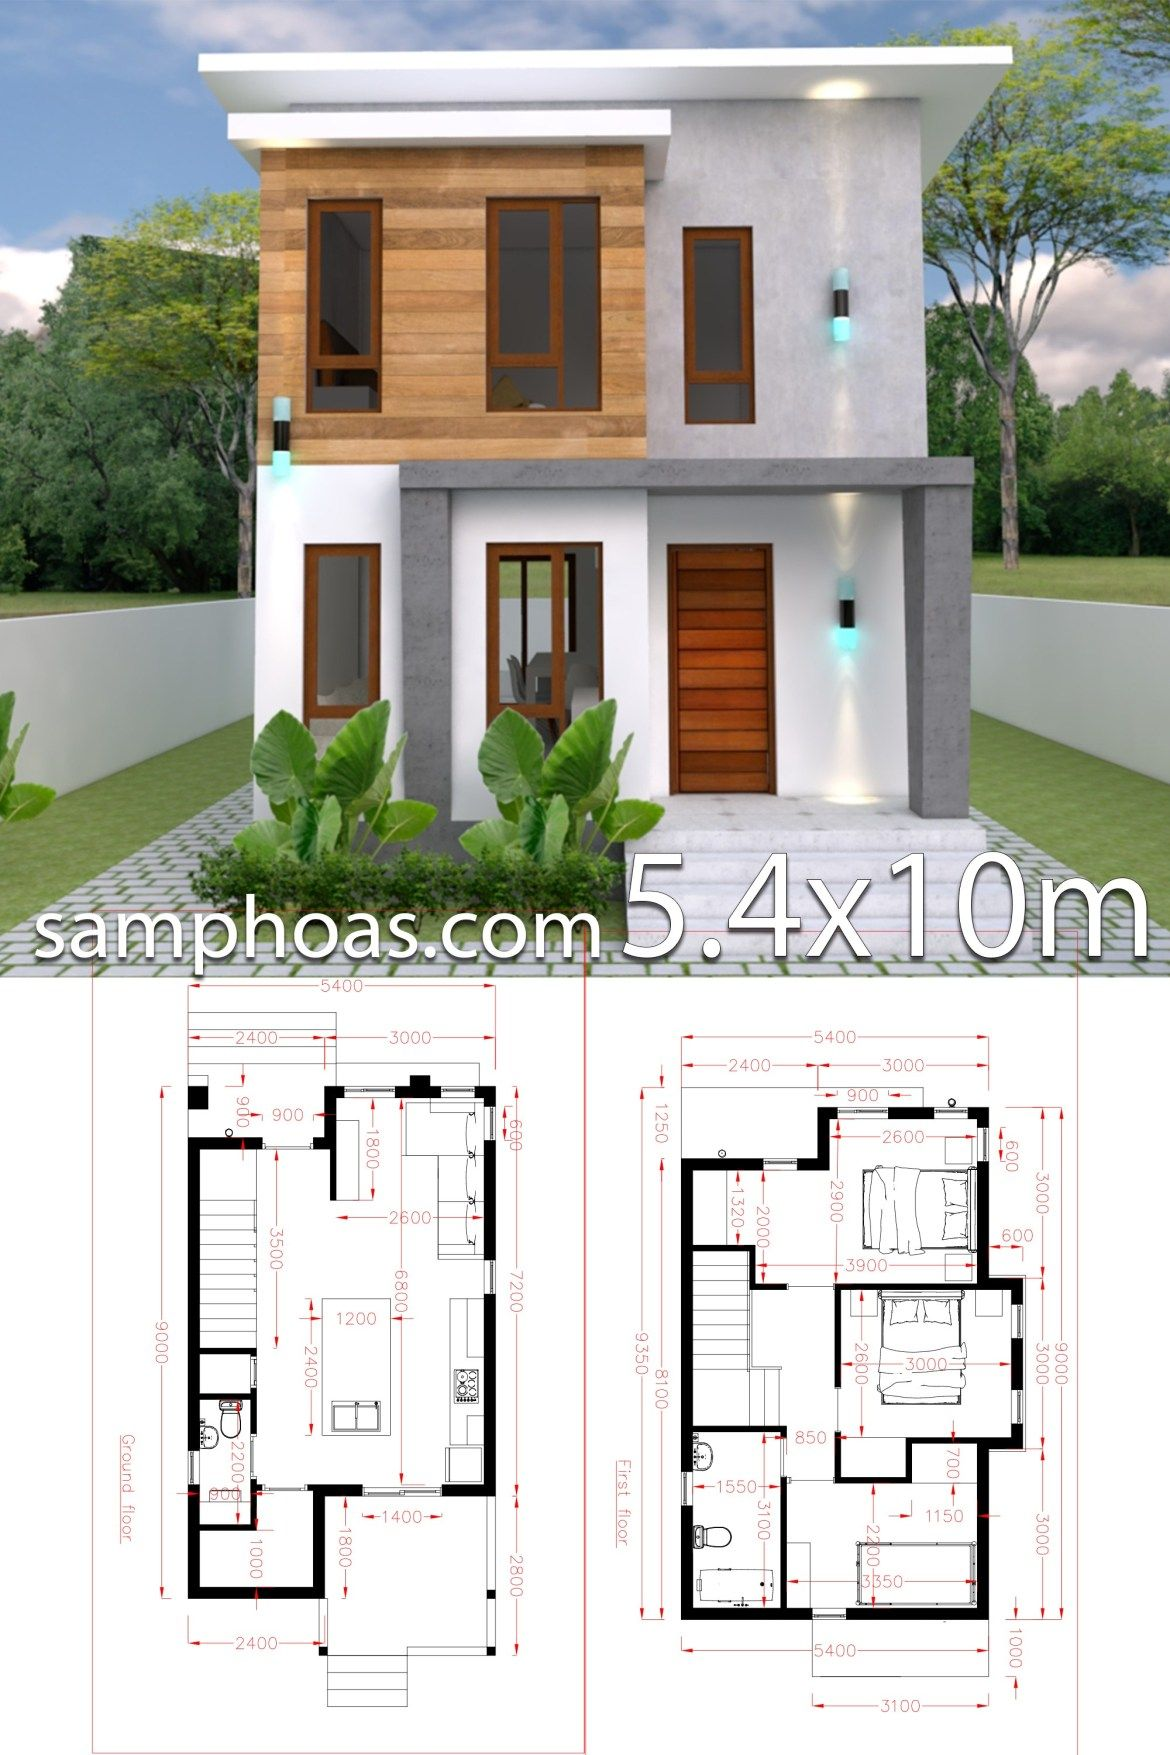 Small Home Design Plan 5 4x10m With 3 Bedroom Samphoas Plansearch Small House Design Plans Architectural House Plans Model House Plan